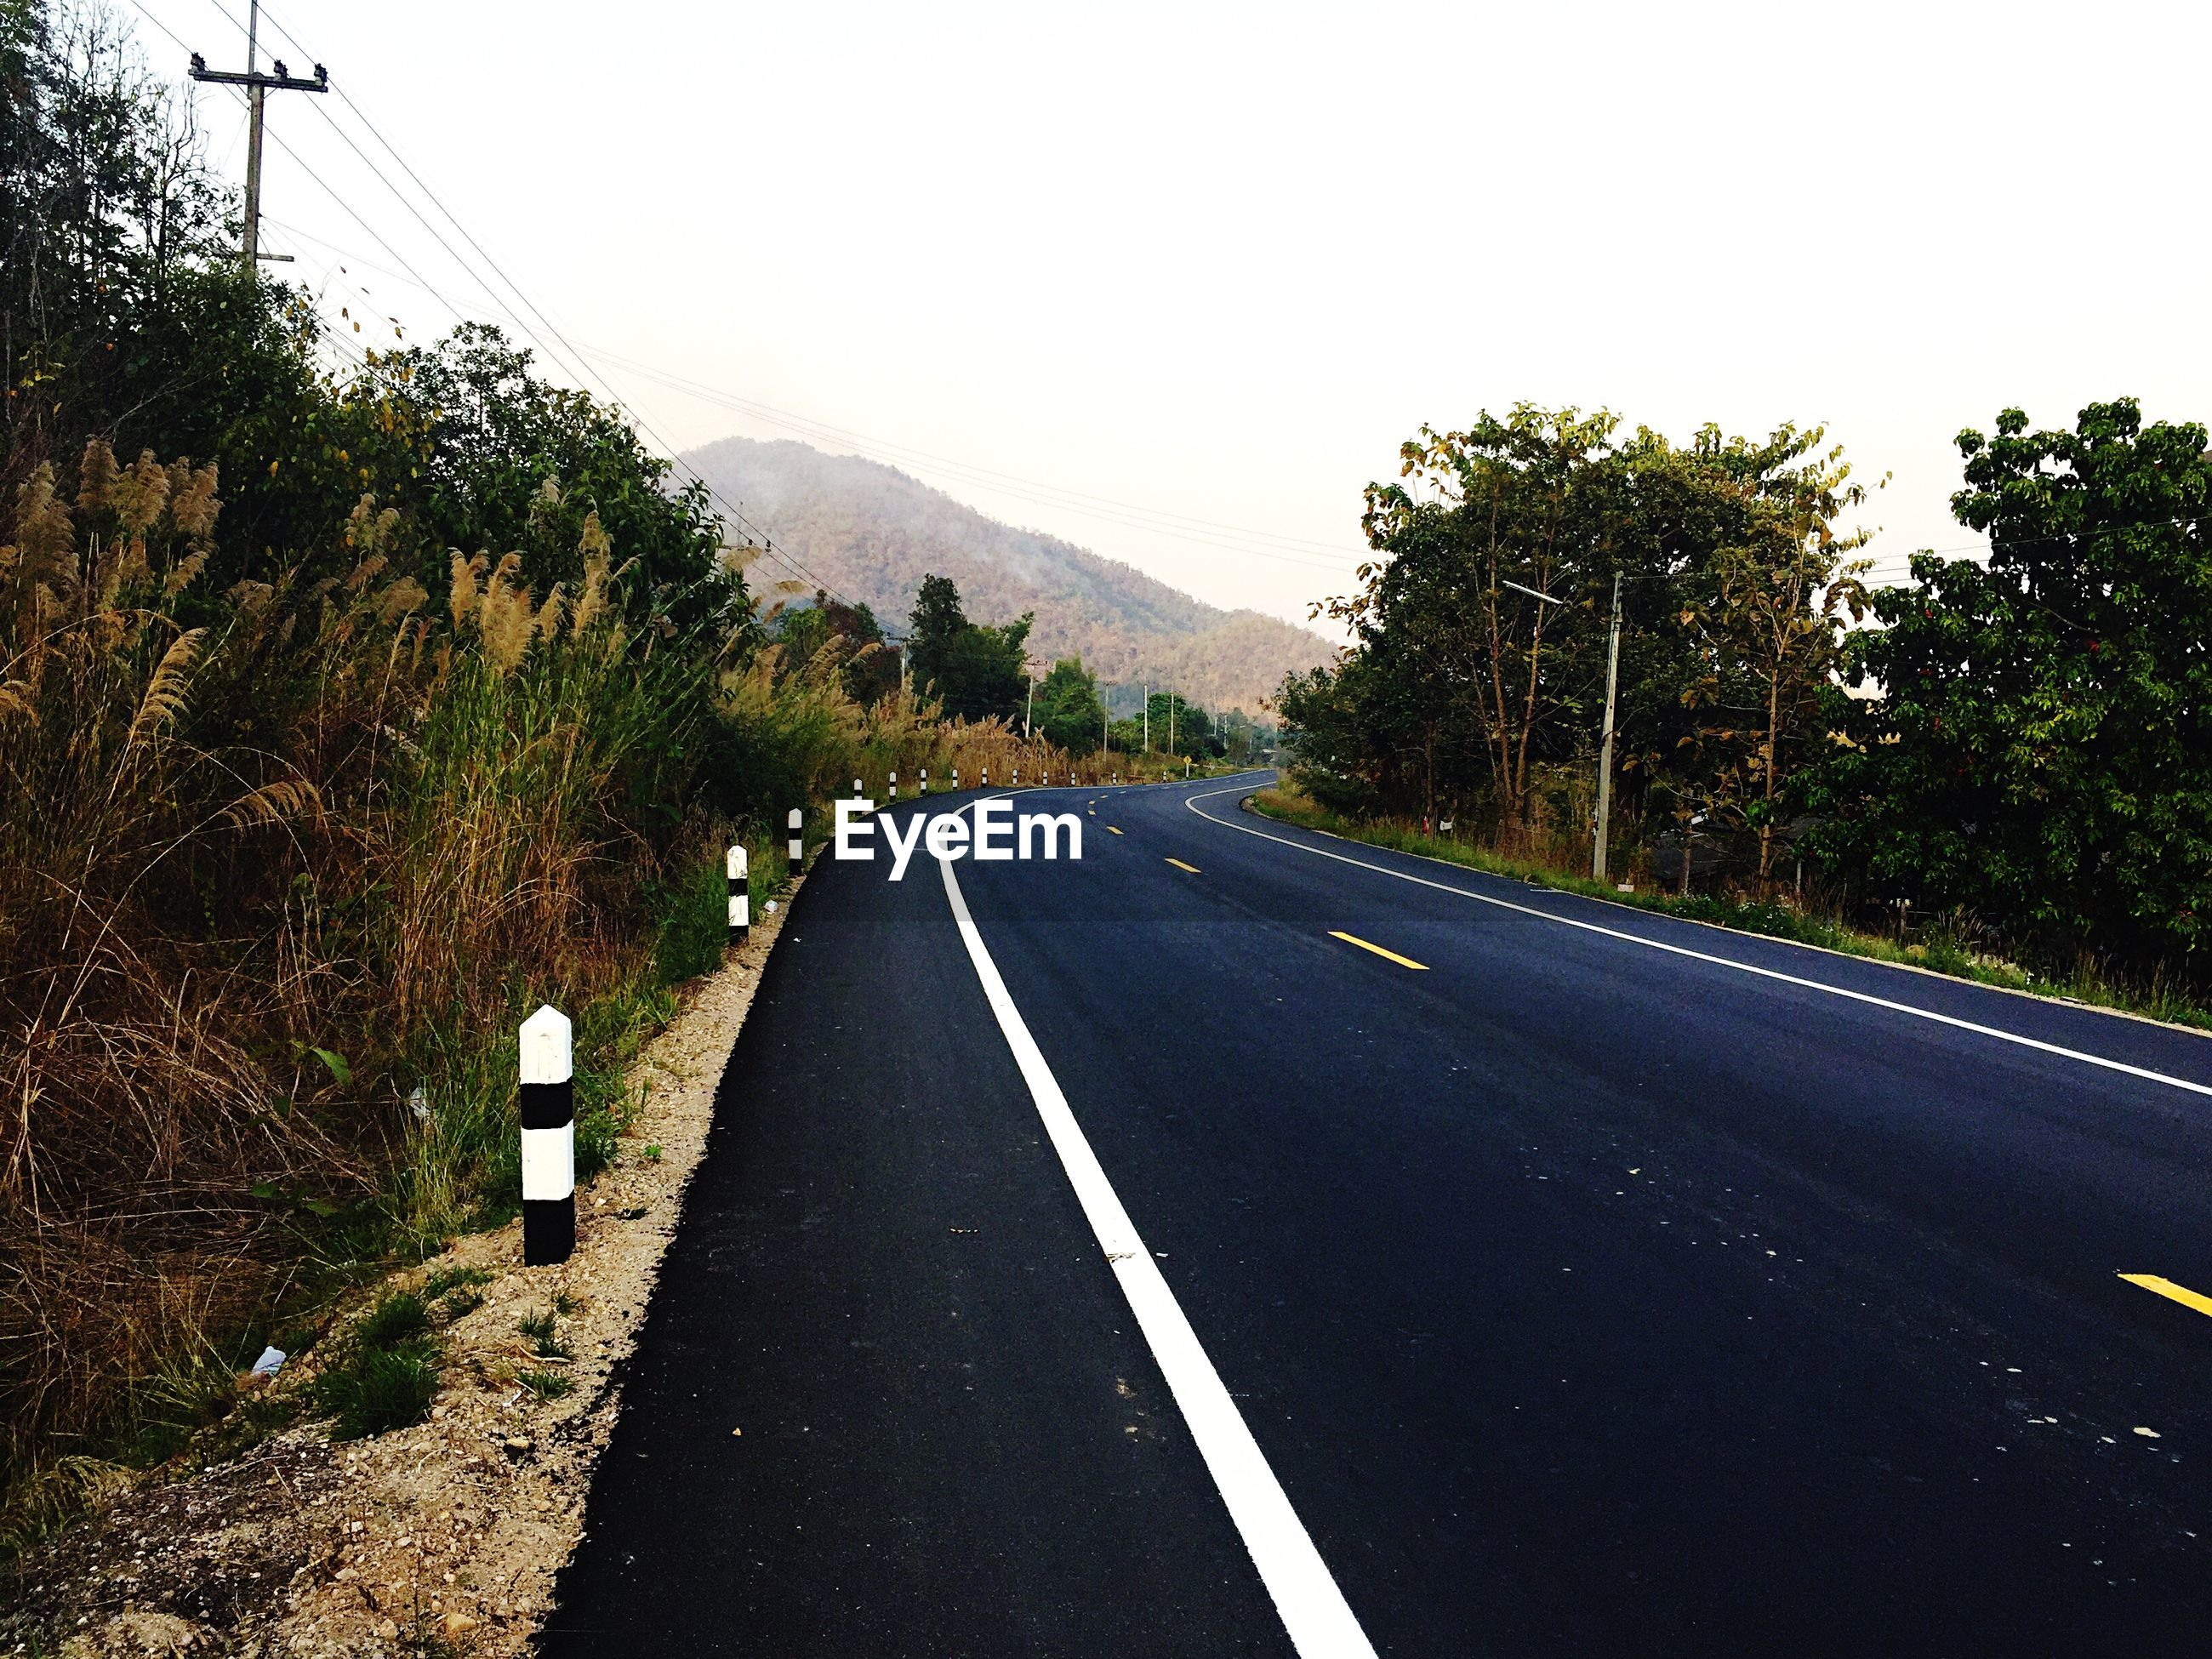 the way forward, transportation, road, road marking, diminishing perspective, vanishing point, tree, asphalt, country road, clear sky, mountain, empty road, sky, double yellow line, dividing line, street, empty, road sign, tranquility, nature